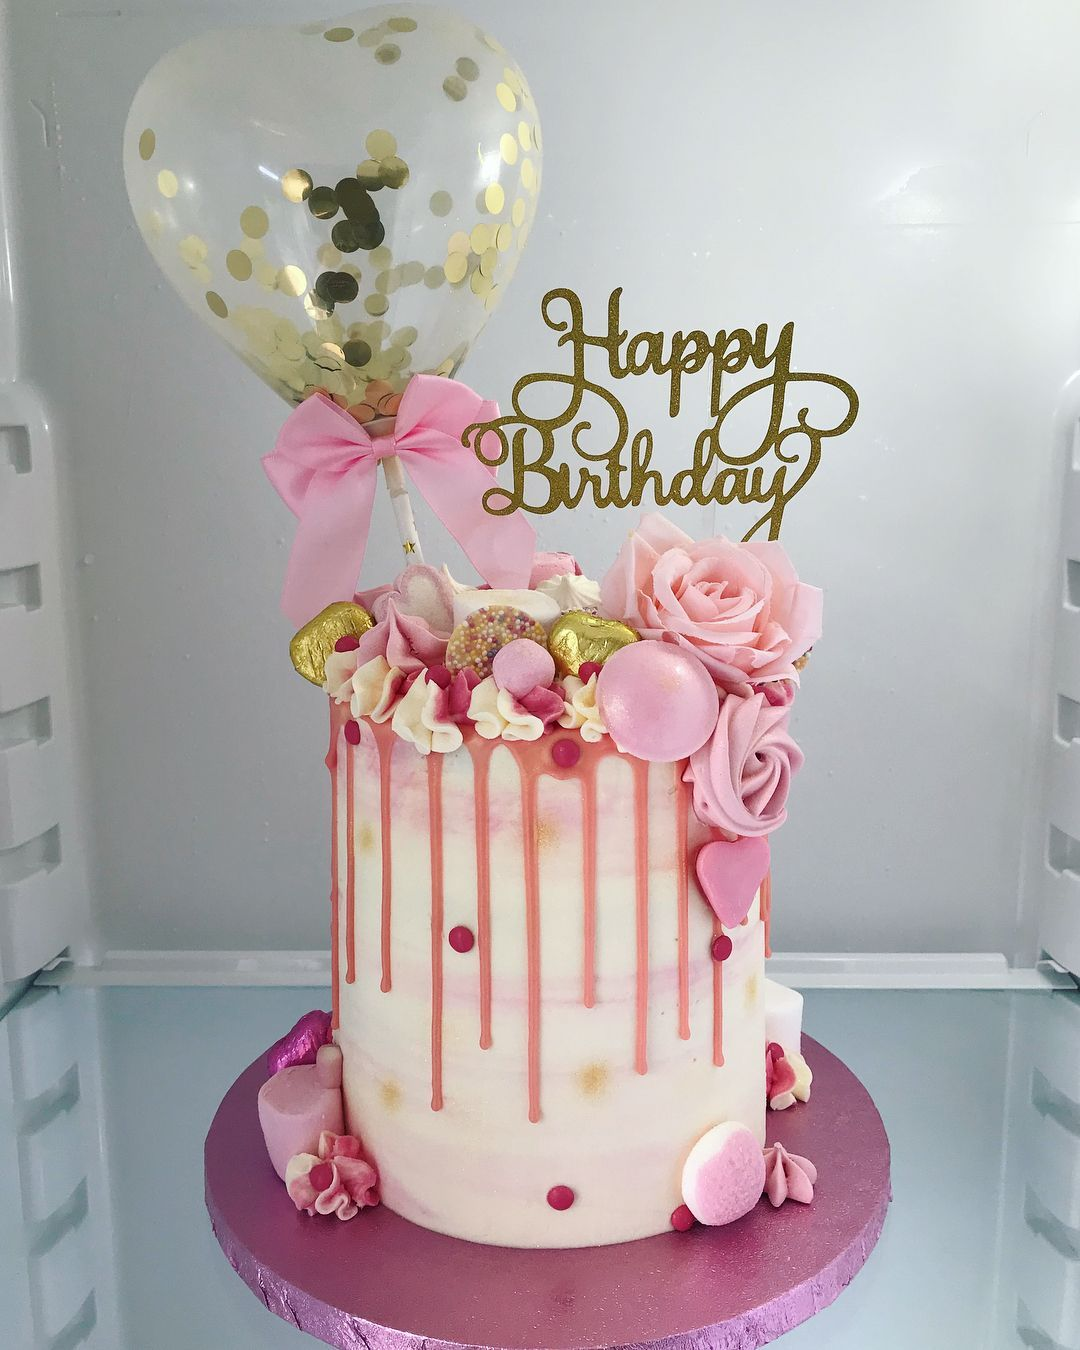 Are you looking for inspiration for happy birthday funny